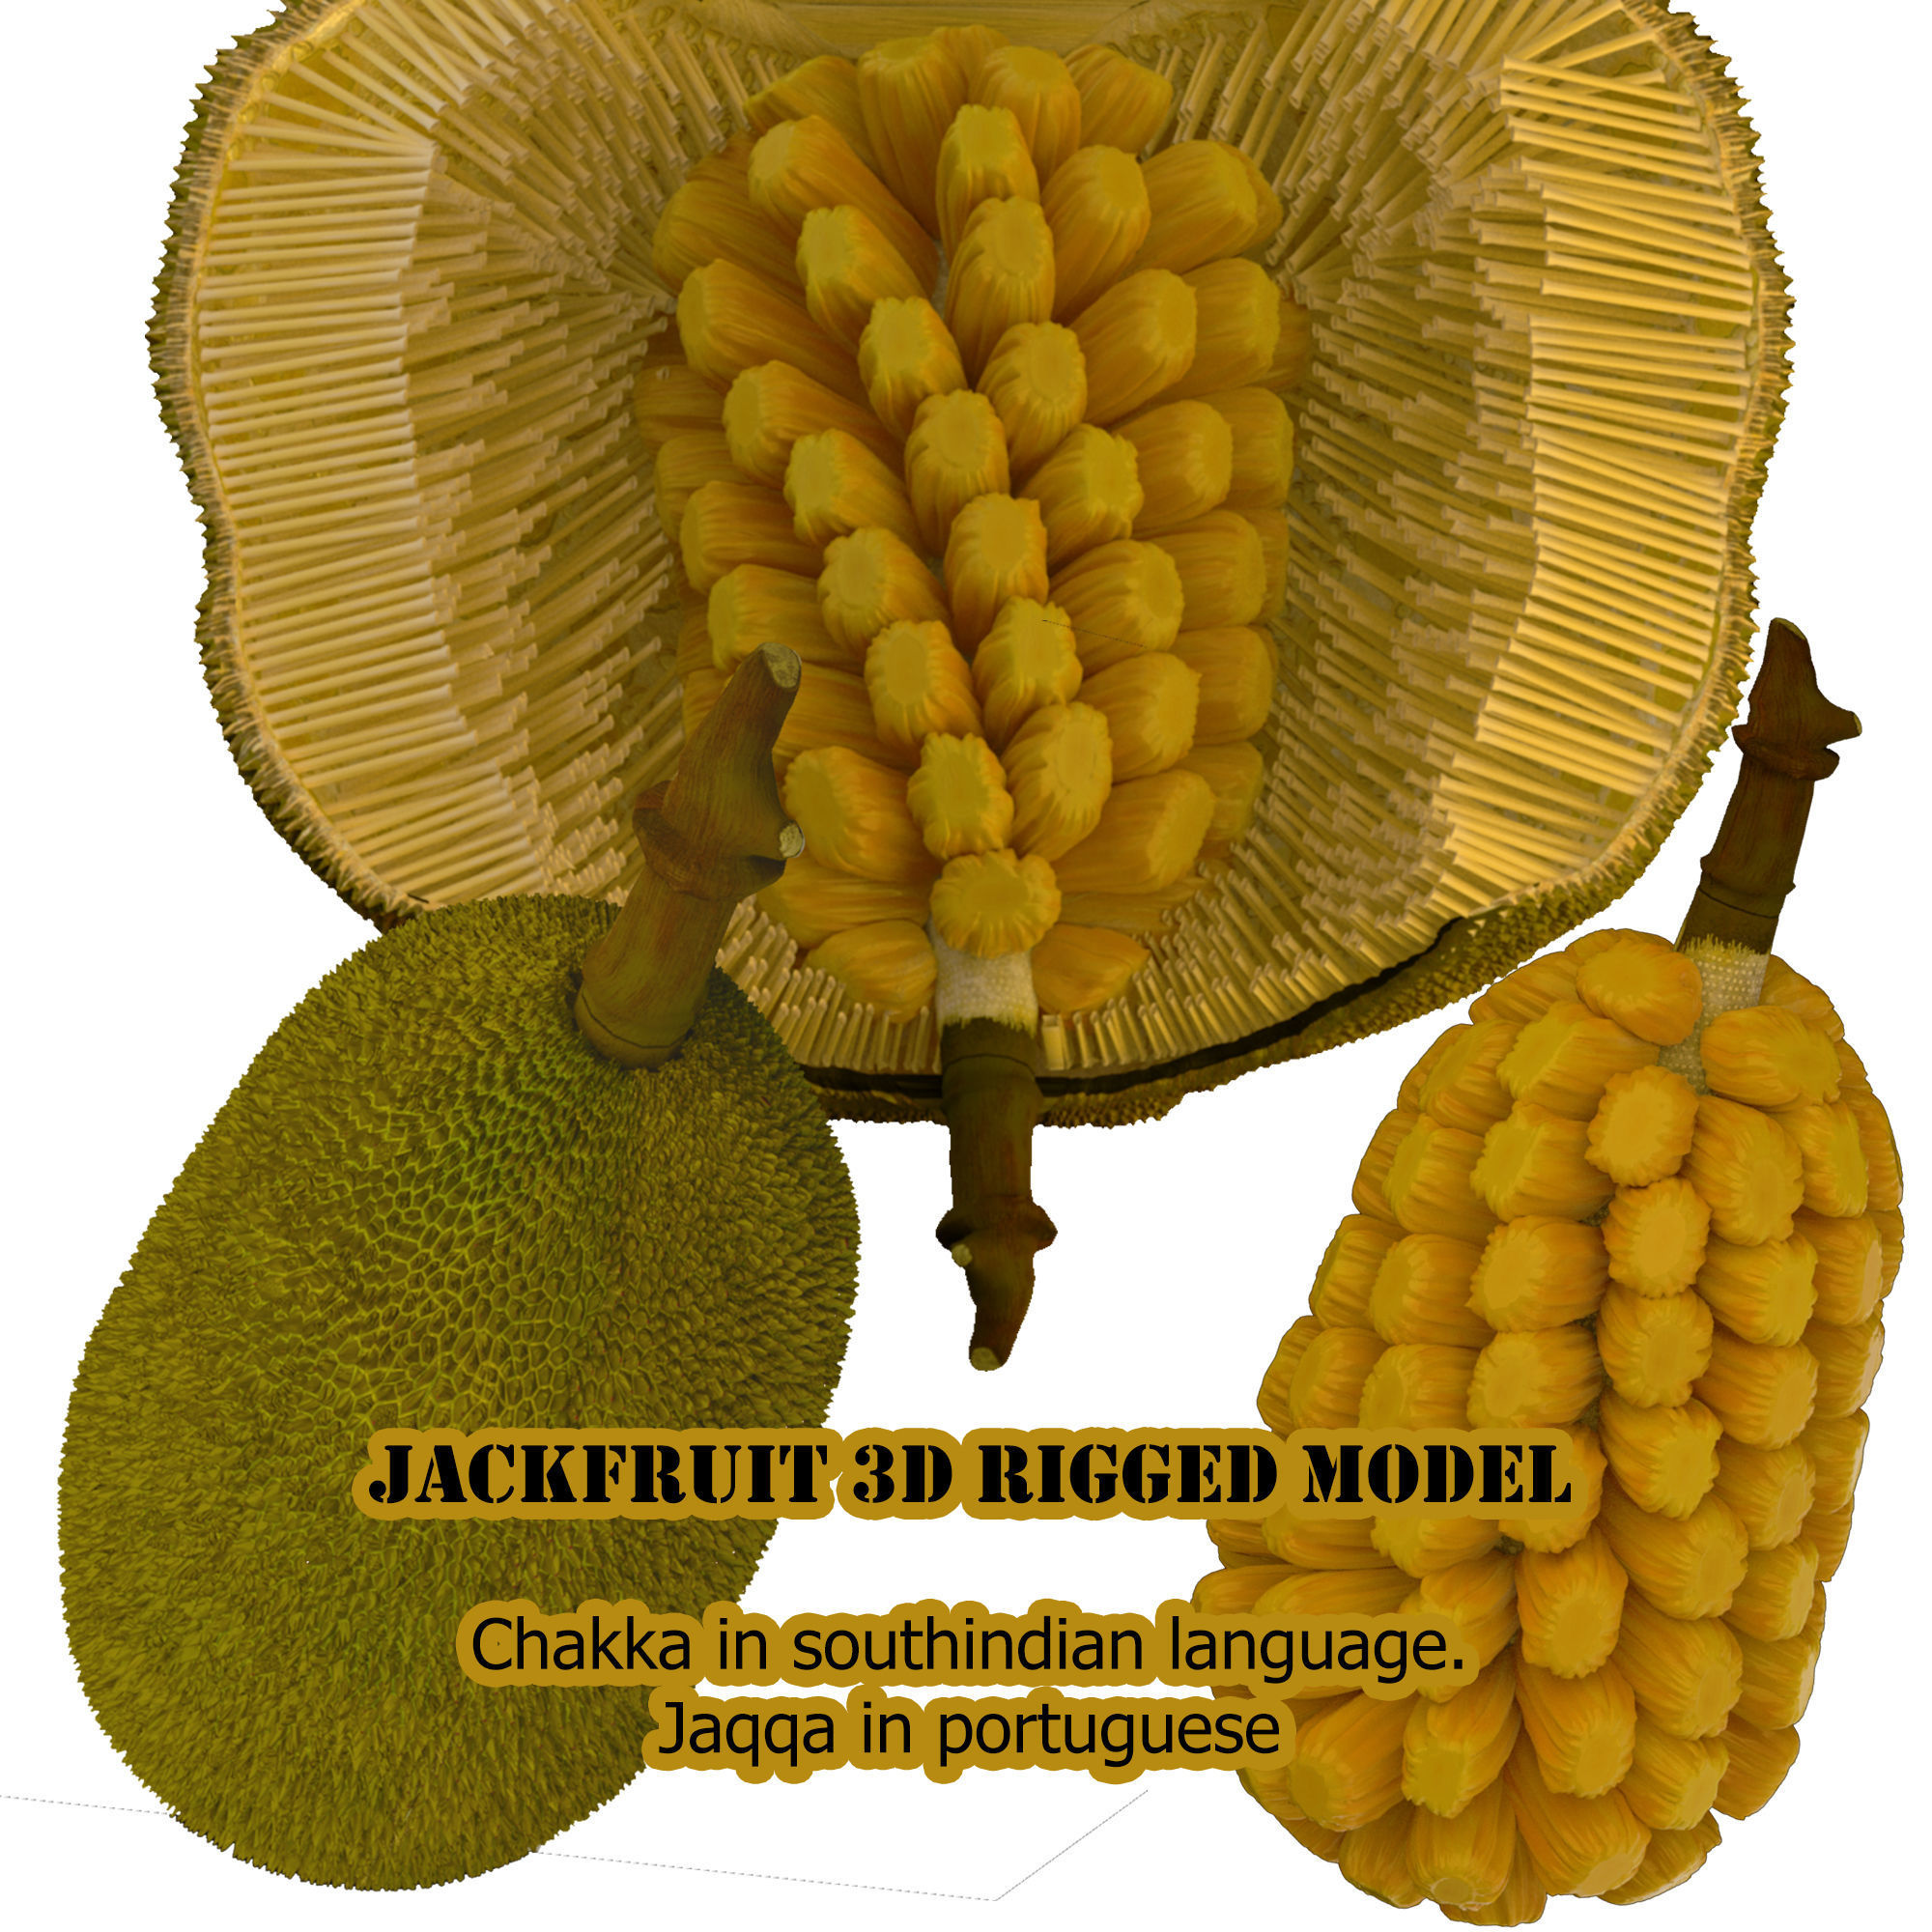 jackfruit 3D rigged model